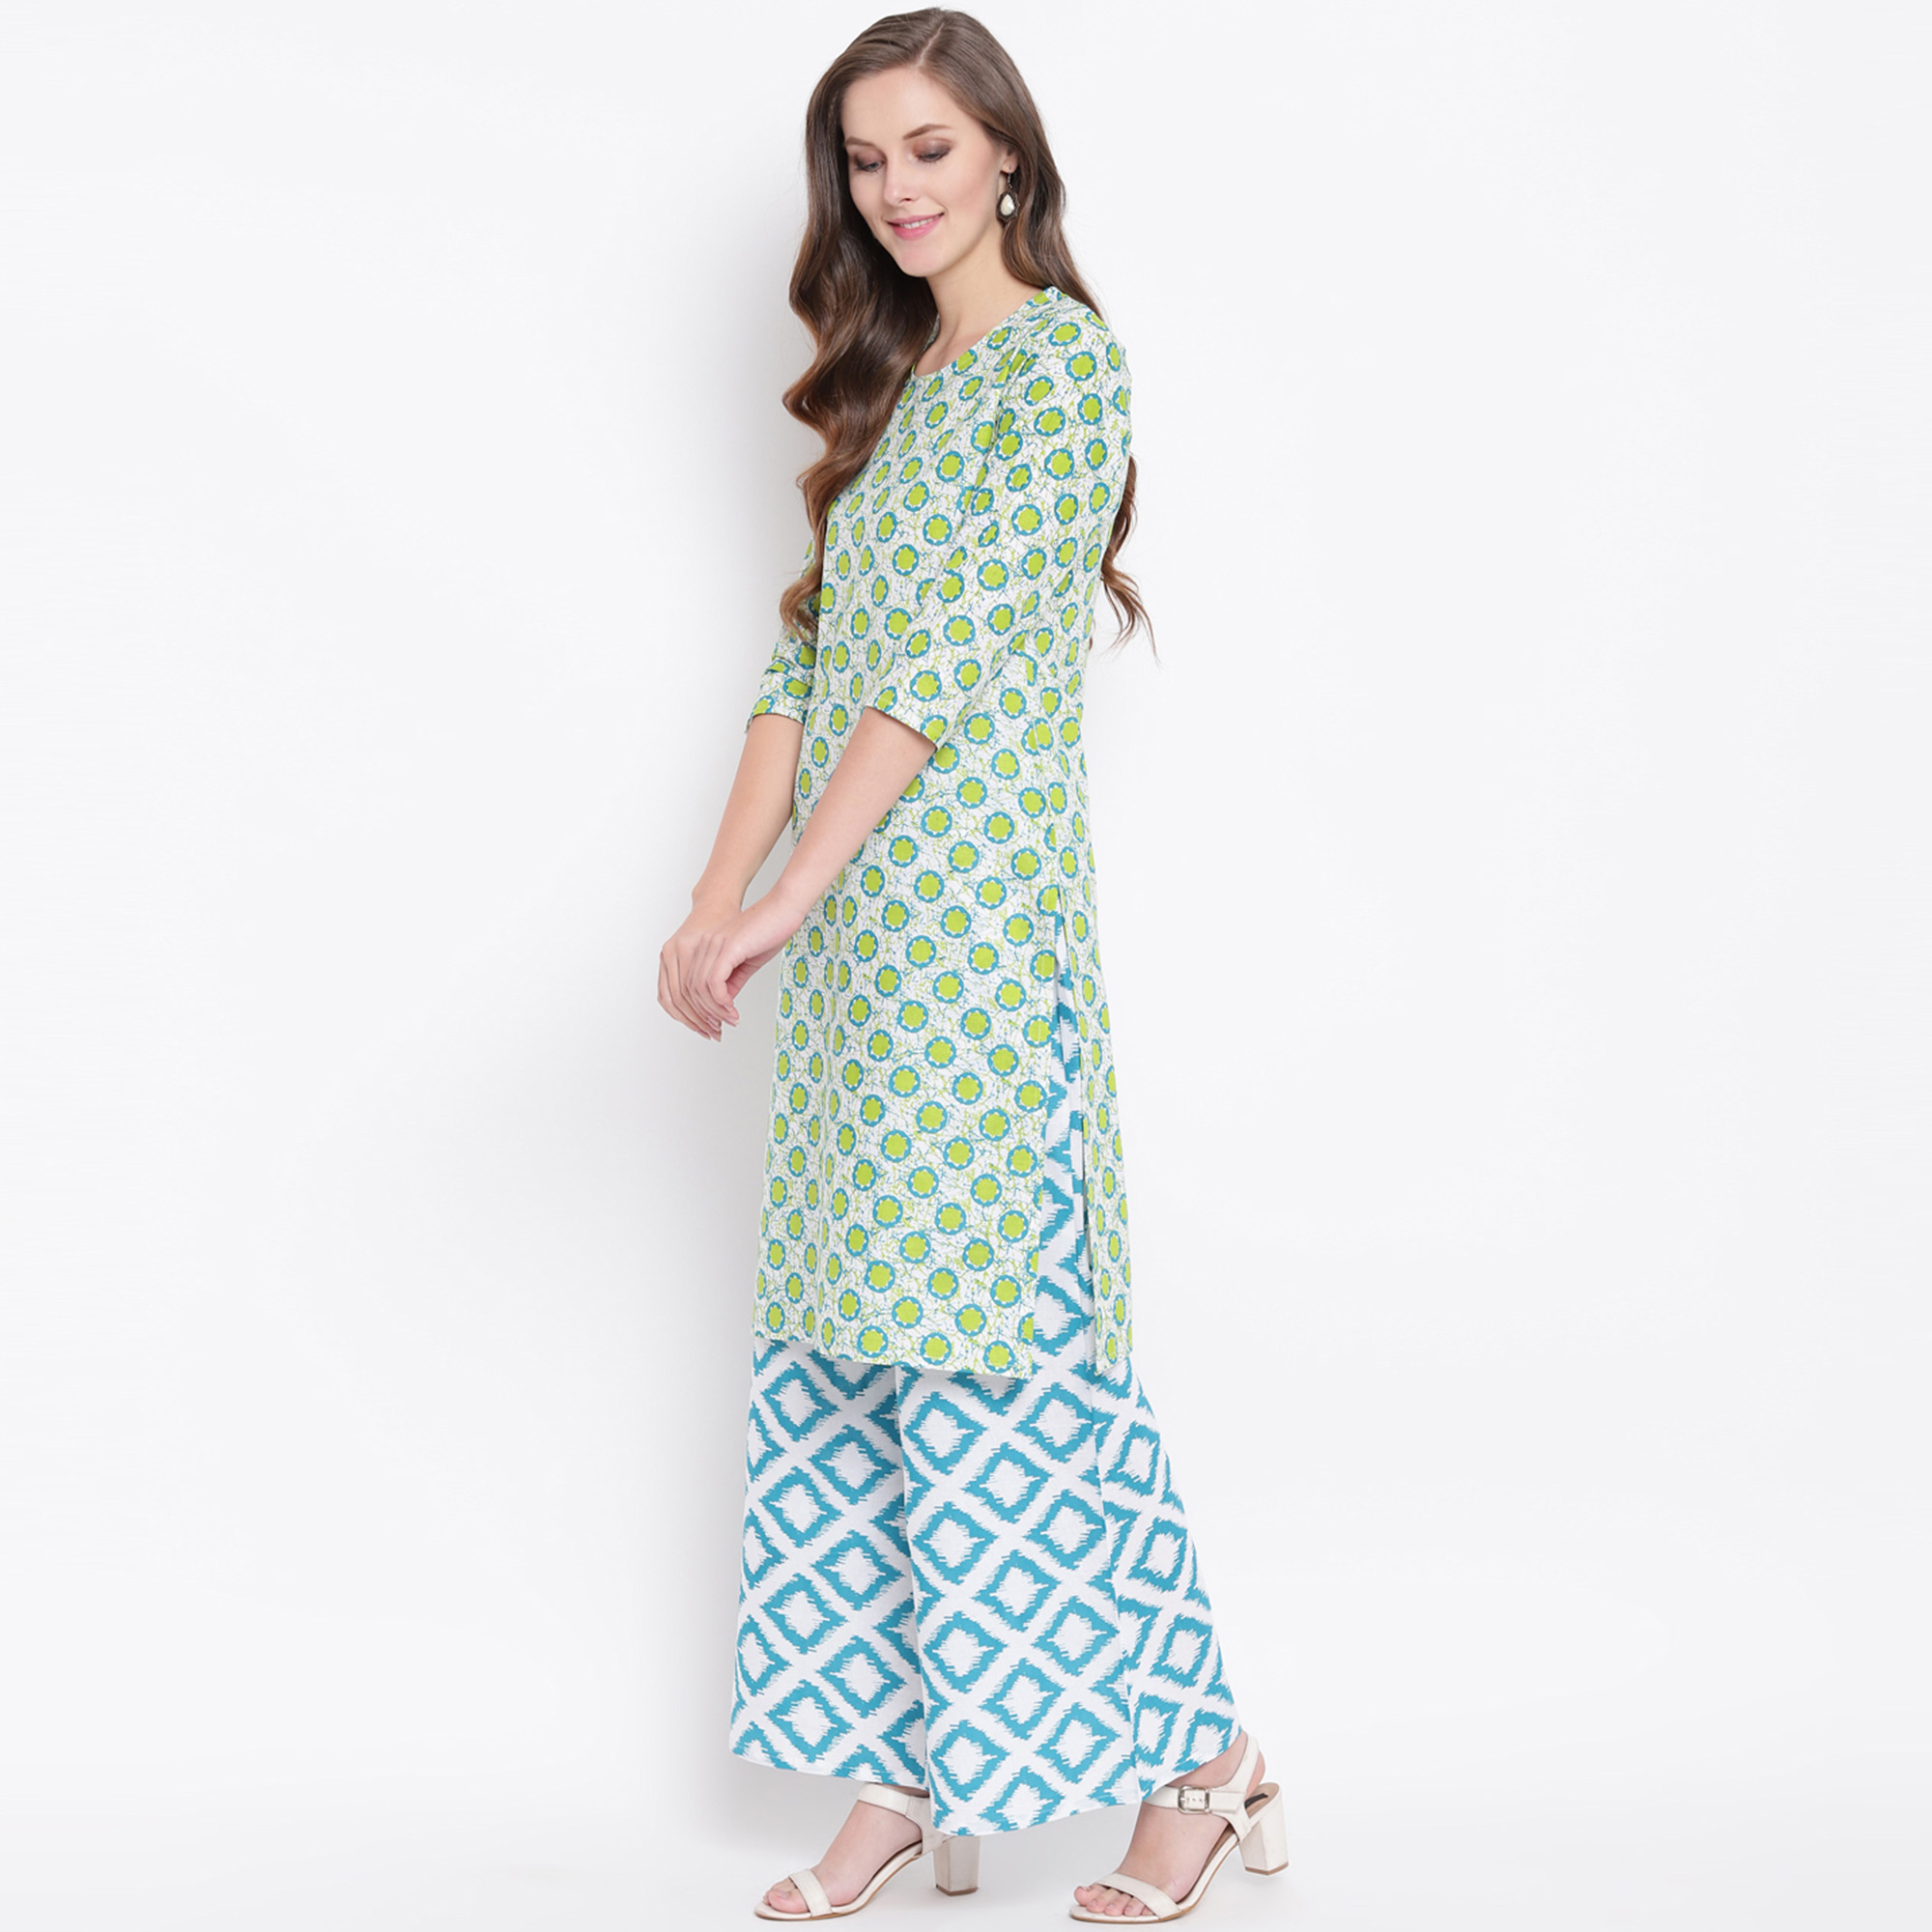 Engrossing Green Colored Casual Printed Cotton Kurti-Palazzo Set